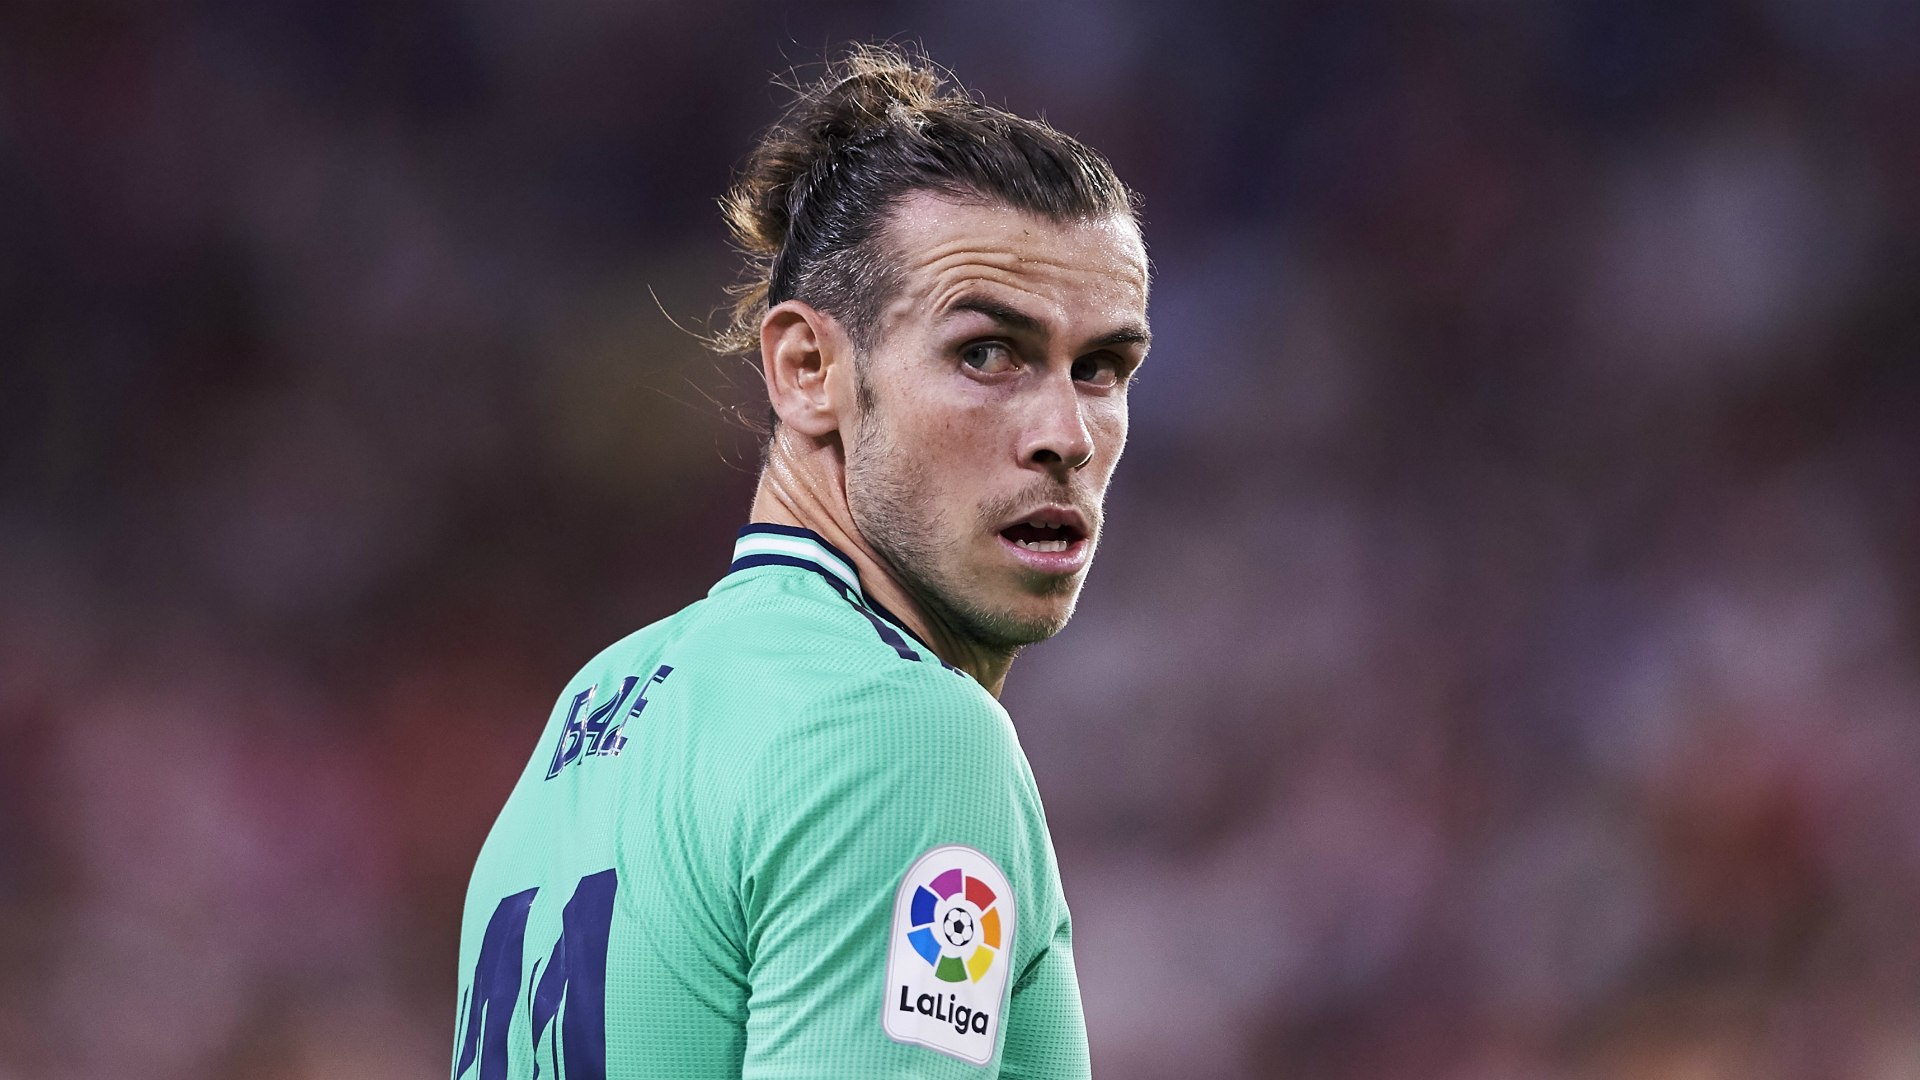 'I don't have to convince Bale about anything!' - Zidane fires back amid Real Madrid exit rumours